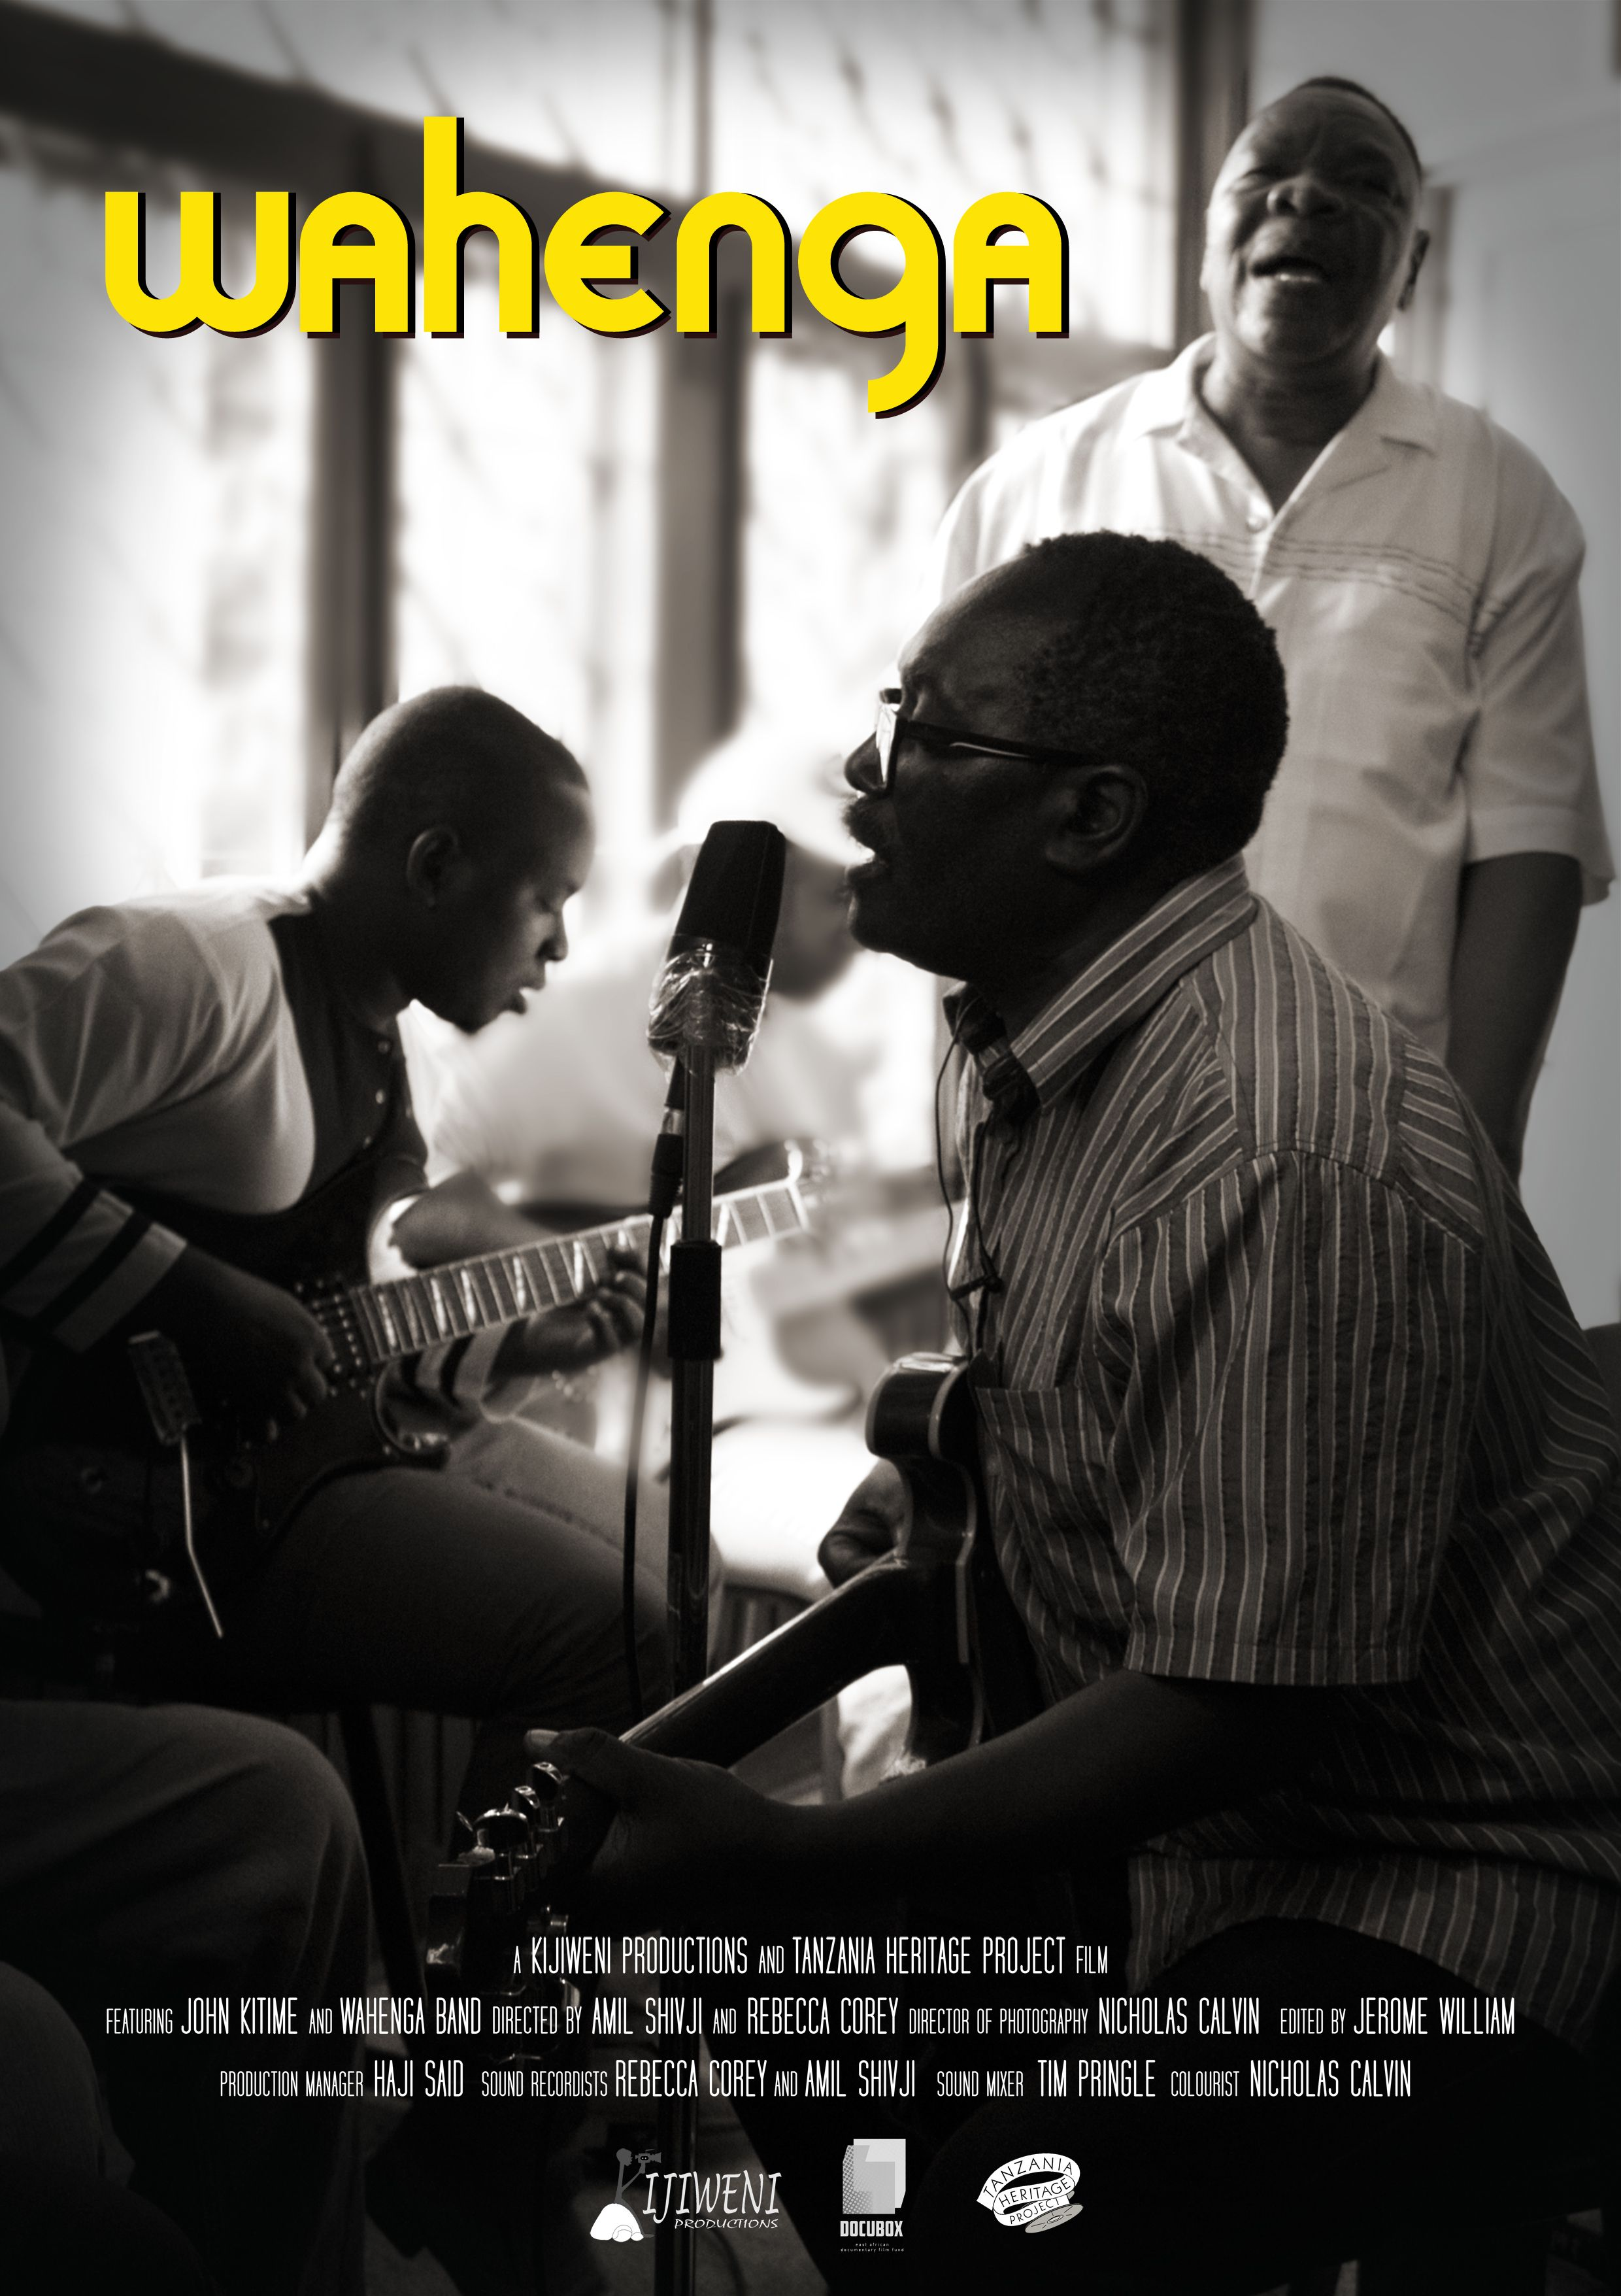 "Wahenga, 2018 - Wahenga is an Afro Jazz documentary, a first in East Africa, illuminating the genre of music known as 'Zilipendwa'.  More than just the soothing 'golden era' of dance music it is known as, Zilipendwa characterises a post-independence era common in Africa, where state-sponsored recordings served to unite people and create a common national identity. Synopsis: John Kitime, an energetic musician in his 60s, puts together a band to revive the dying sound of Tanzanian Zilipendwa, music from the early independence era. Weaving memories of the past and dreams for the future, John and his bandmates revisit the era of gleaming horns and packed dance halls as they struggle to keep the music alive in a passionate argument for ""the ones that were loved"